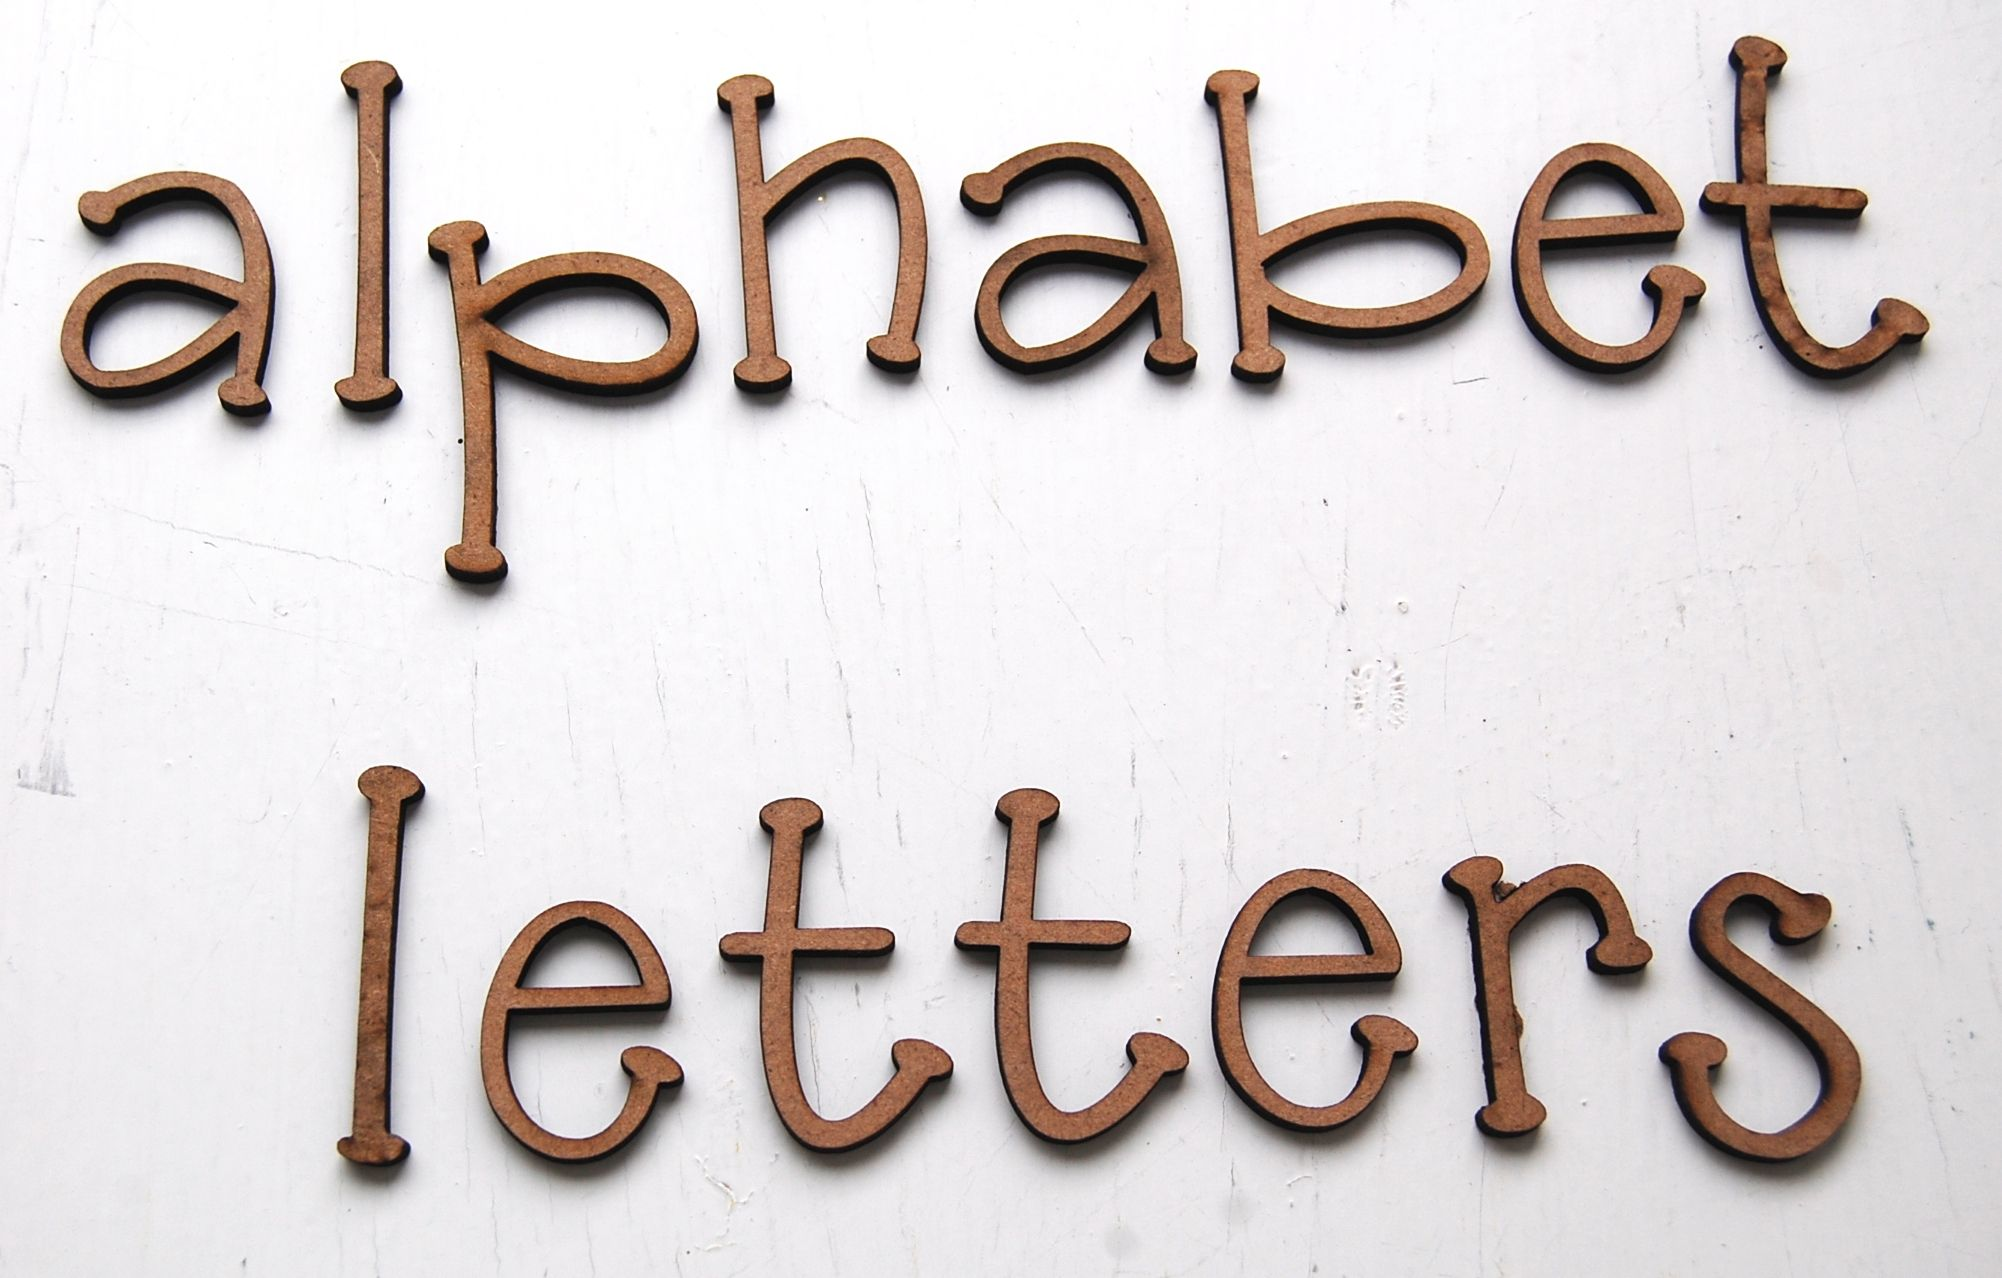 Small Metal Letters For Crafts Country Love Crafts  Small Wooden Craft Letters  Wooden Craft